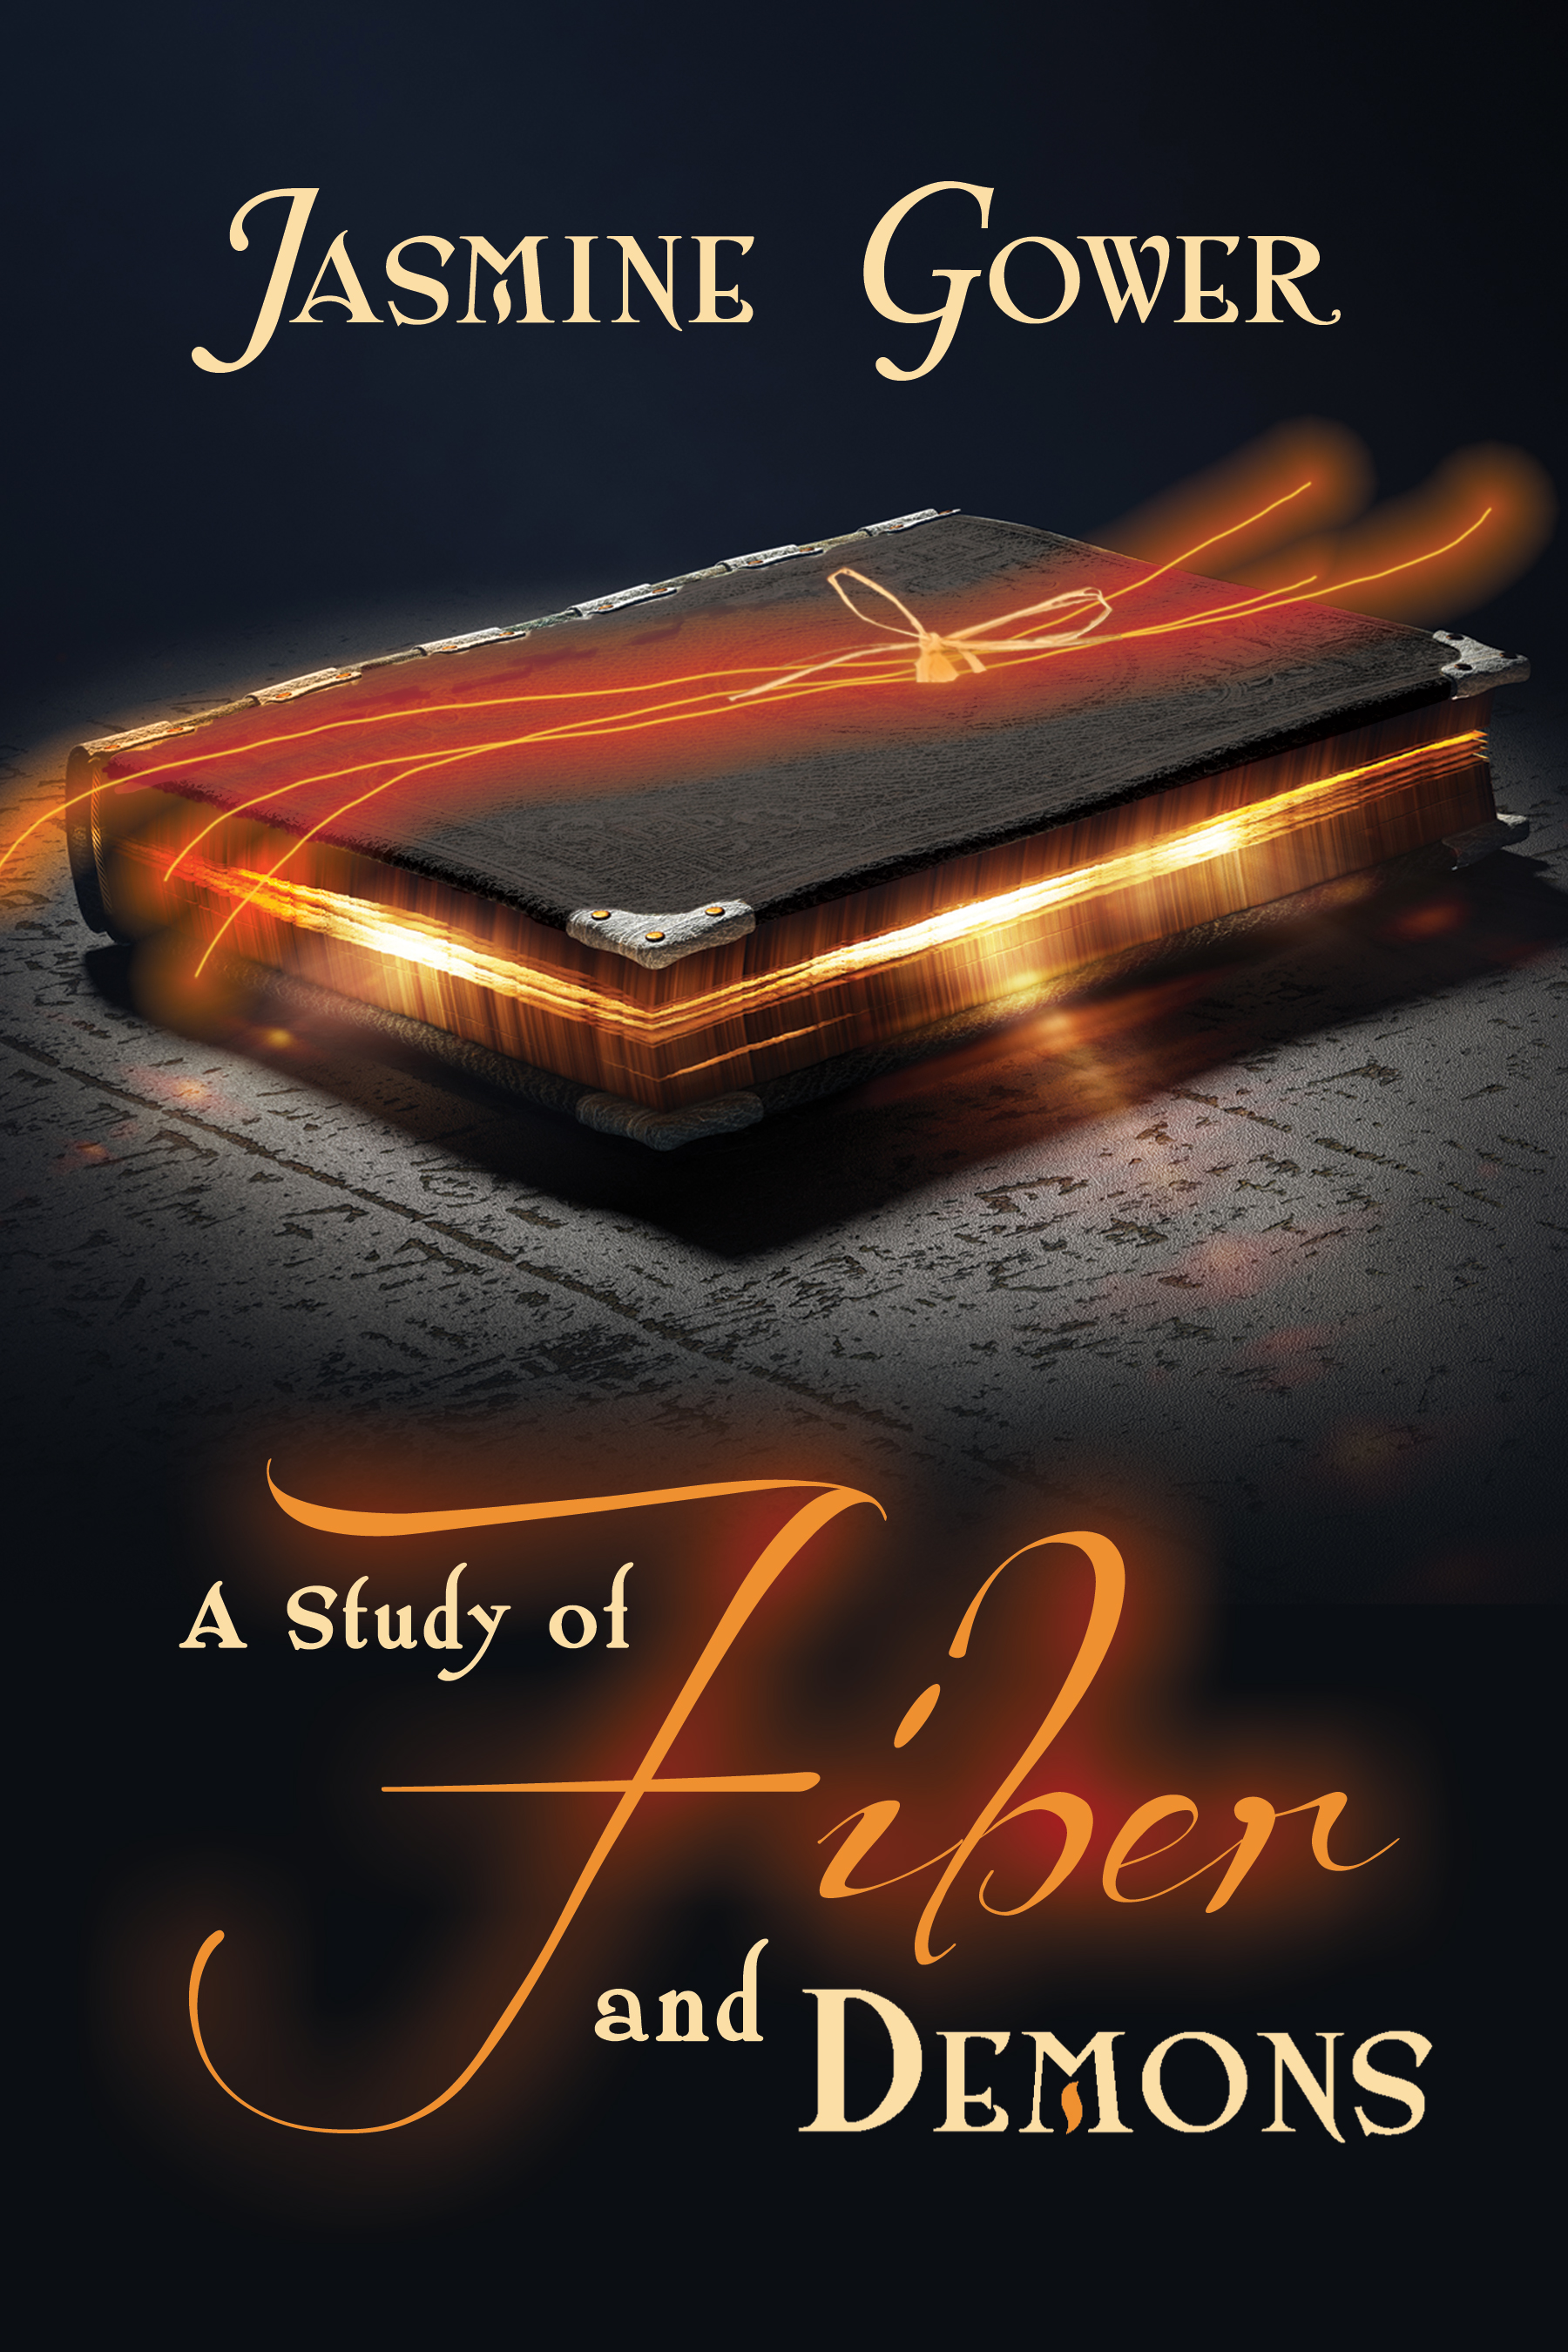 The cover of A STUDY OF FIBER AND DEMONS - a black book with orange light emitting from the pages and a glowing orange thread on top